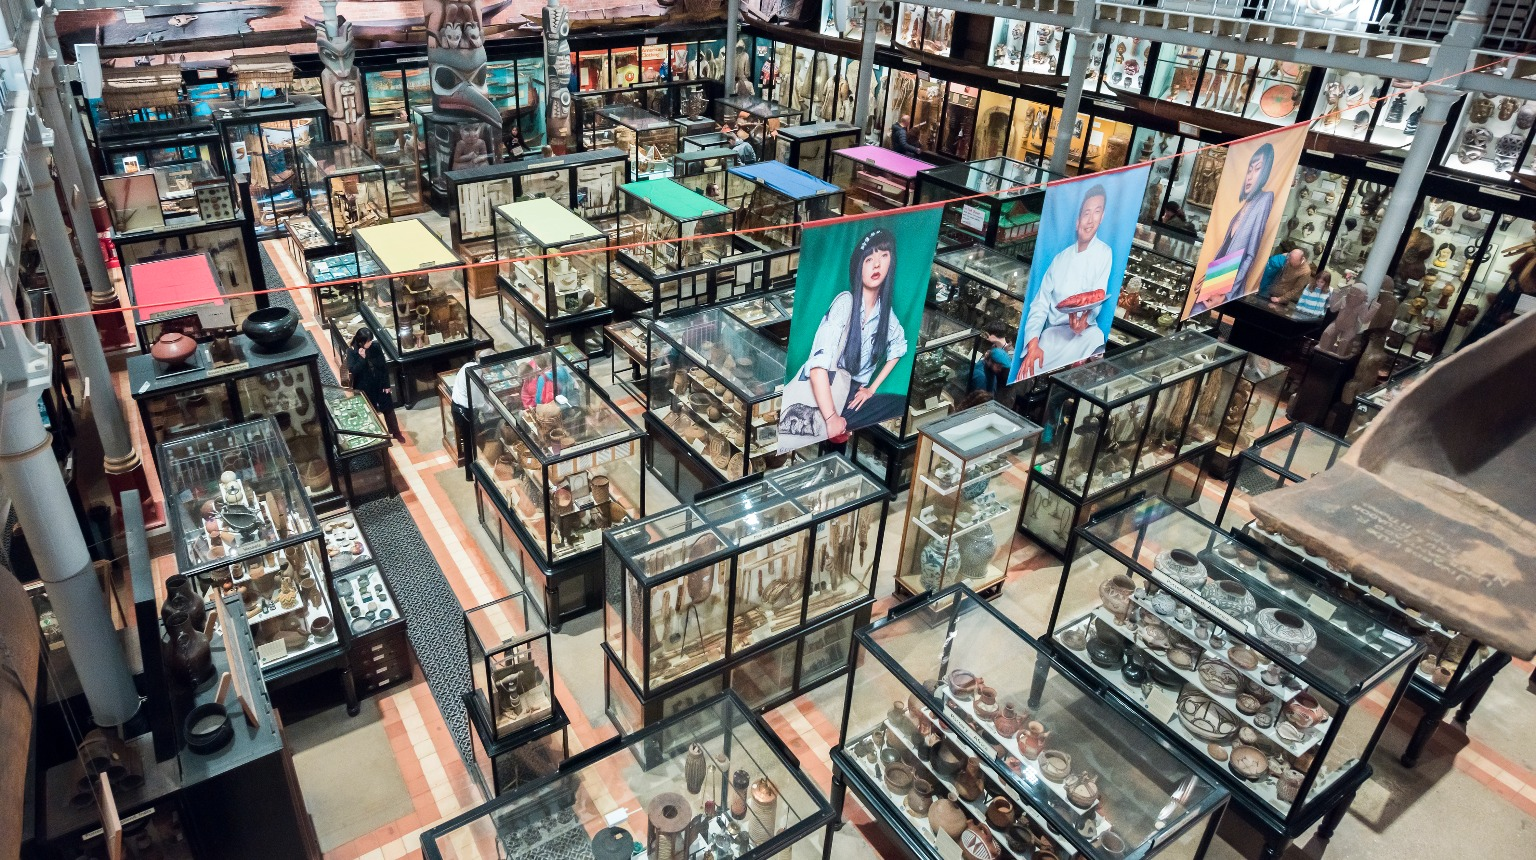 Pitt Rivers Museum, Oxford, Museum of the Year 2019 Finalist